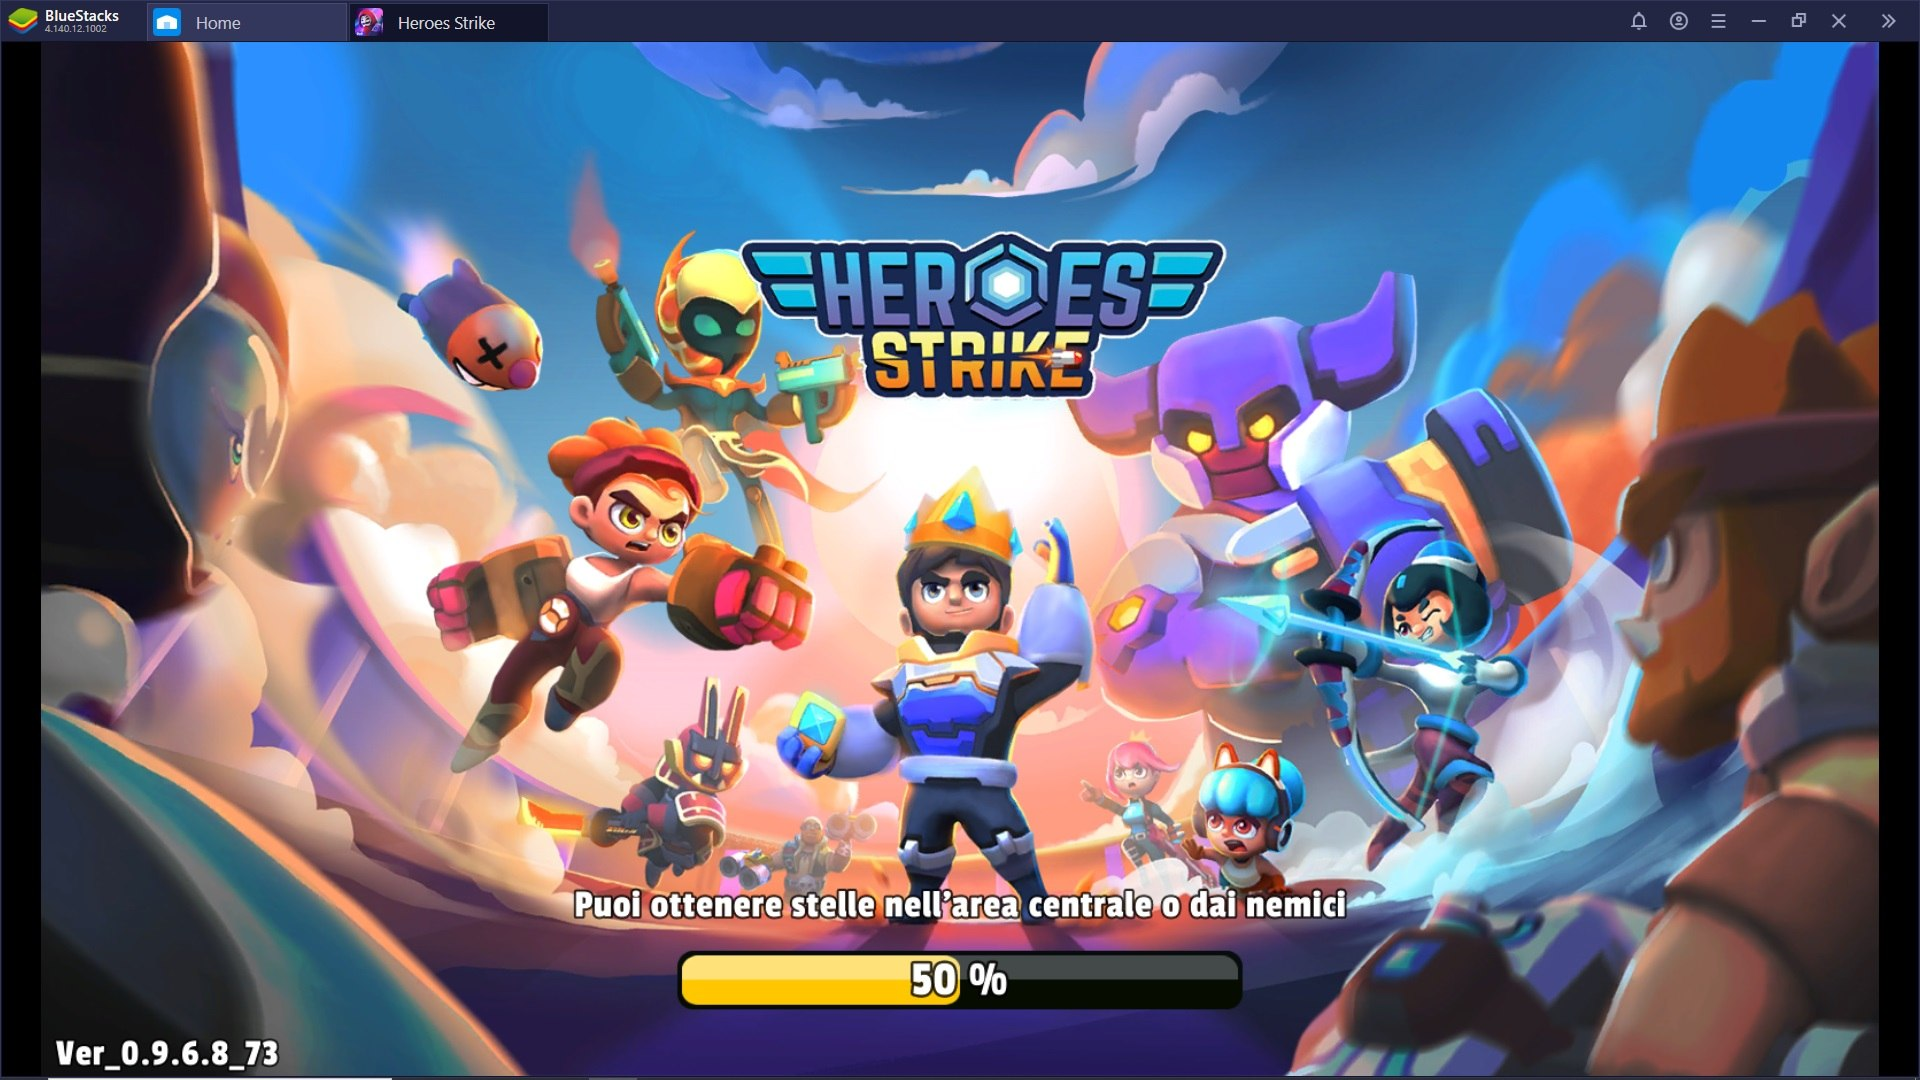 Gioca a Heroes Strike: il nuovo MOBA game è disponibile con Bluestacks